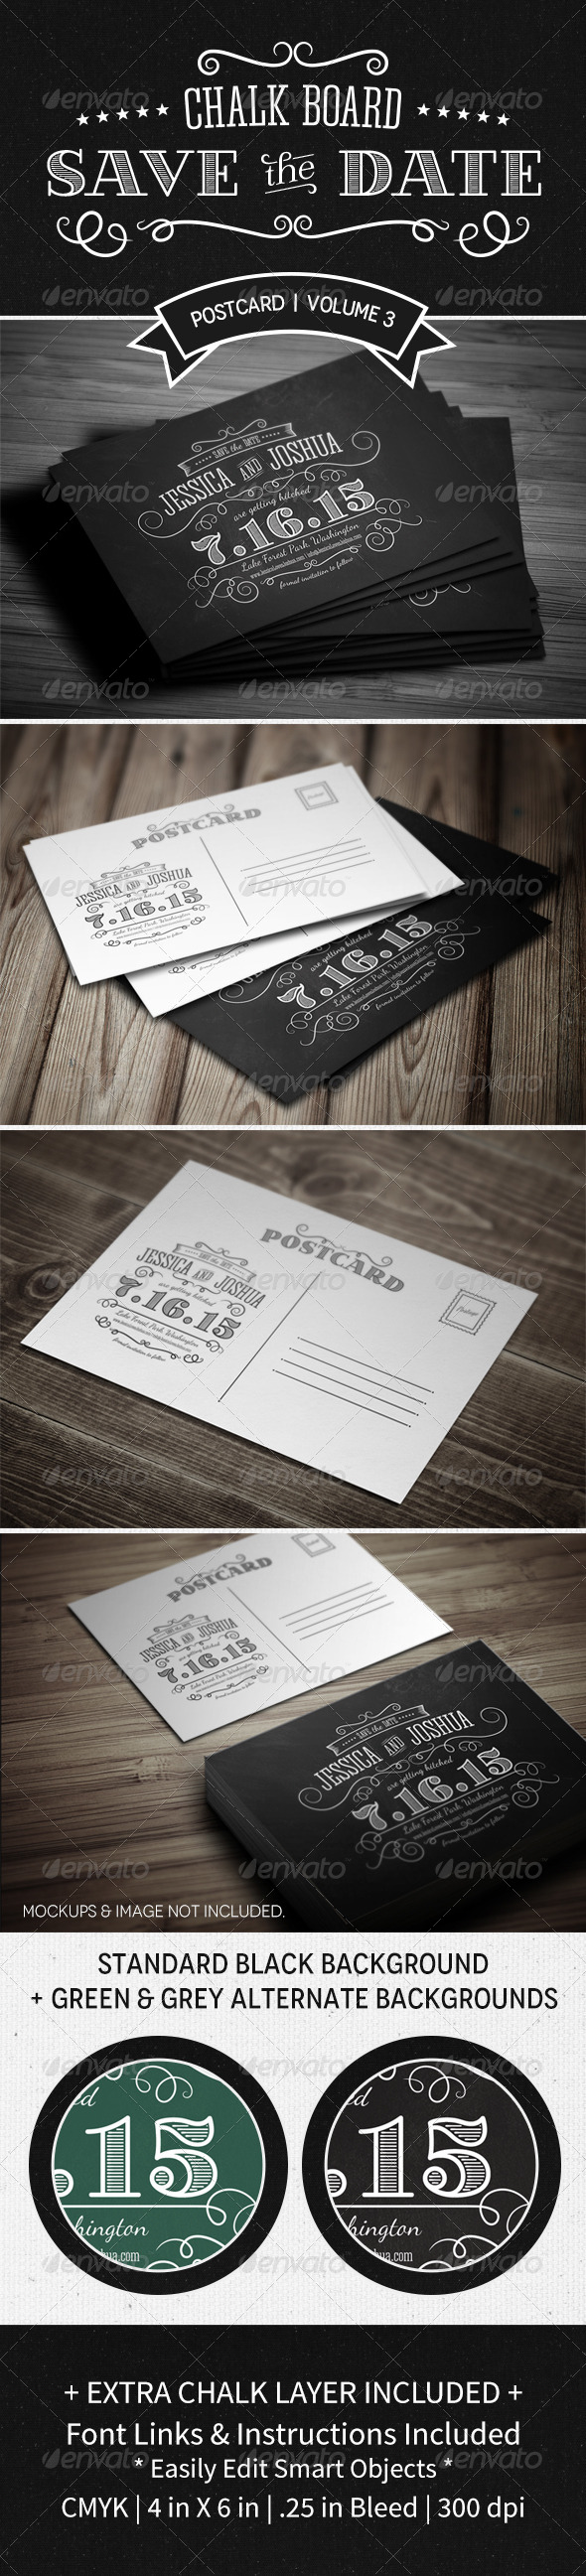 GraphicRiver Save The Date Postcard Volume 3 Chalkboard 5211249